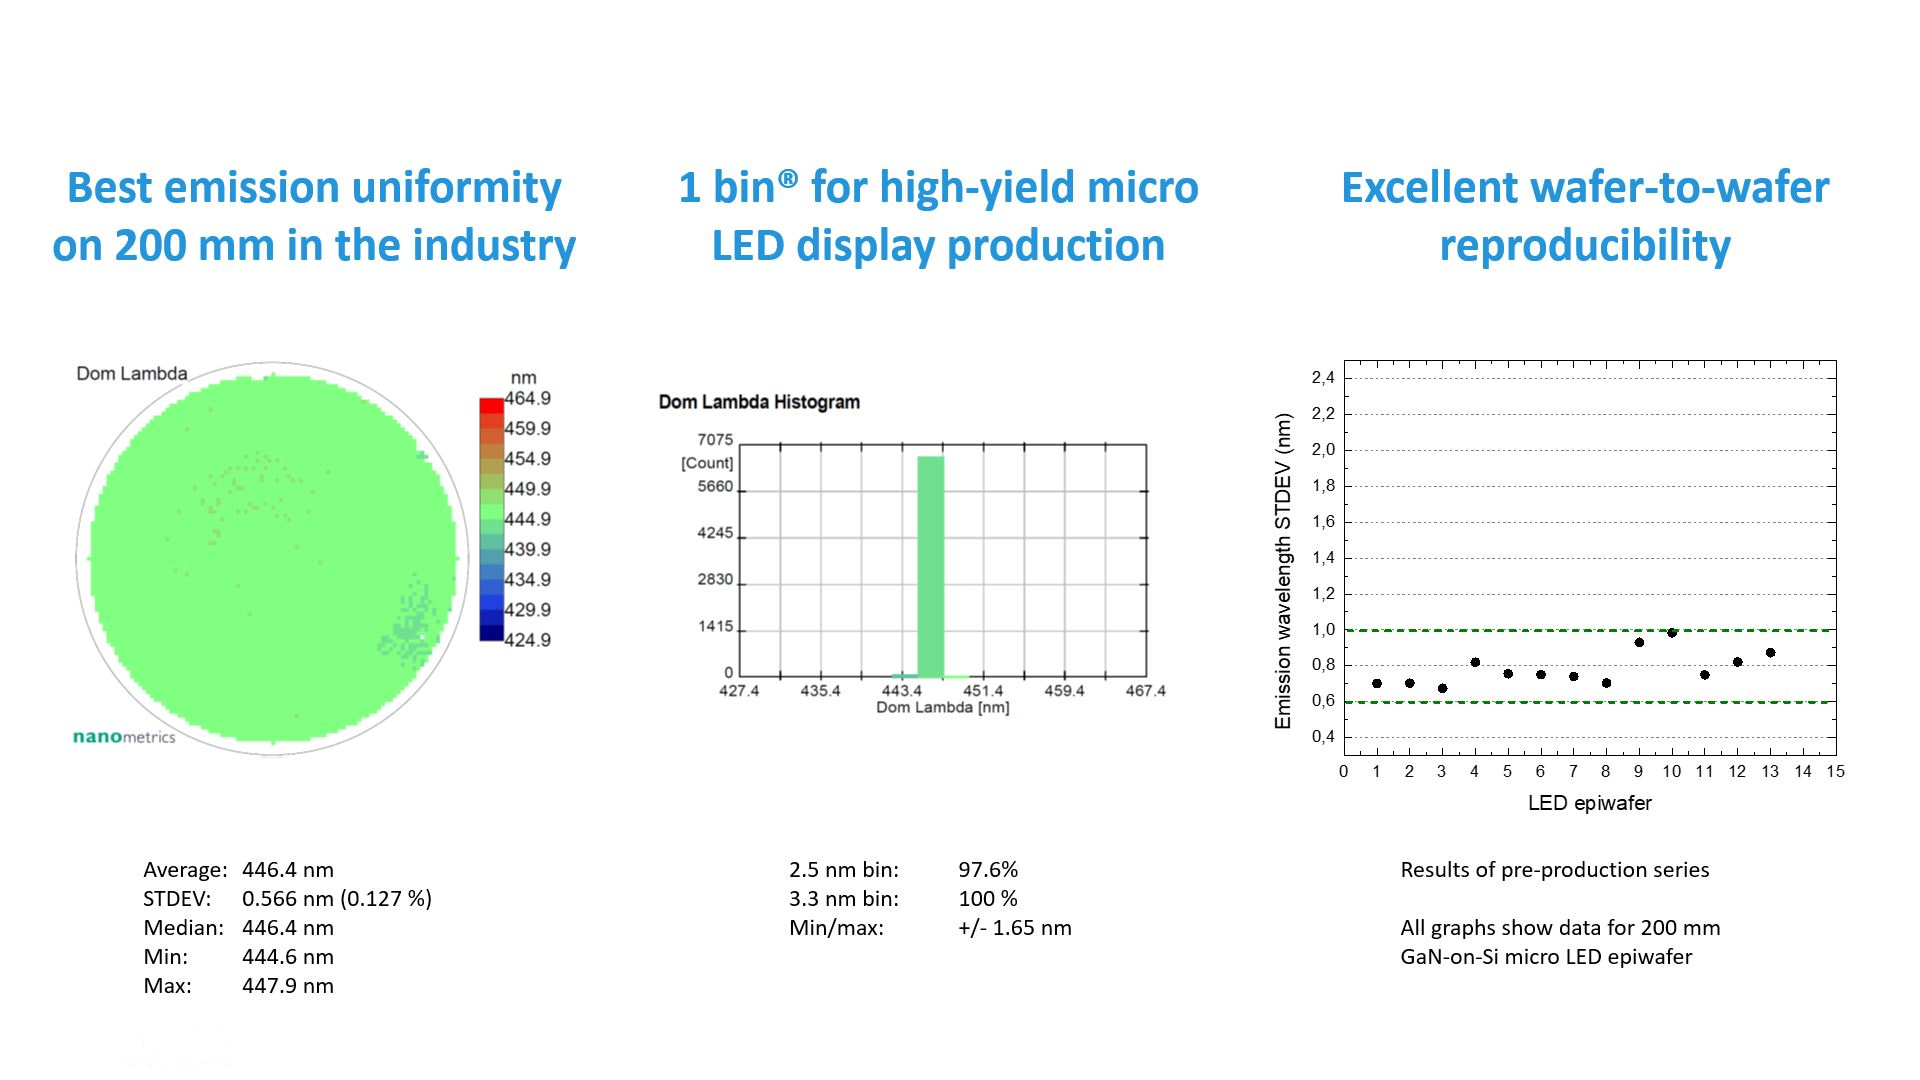 Slider best emmission wavelength uniformity and reproducibility for micro LED